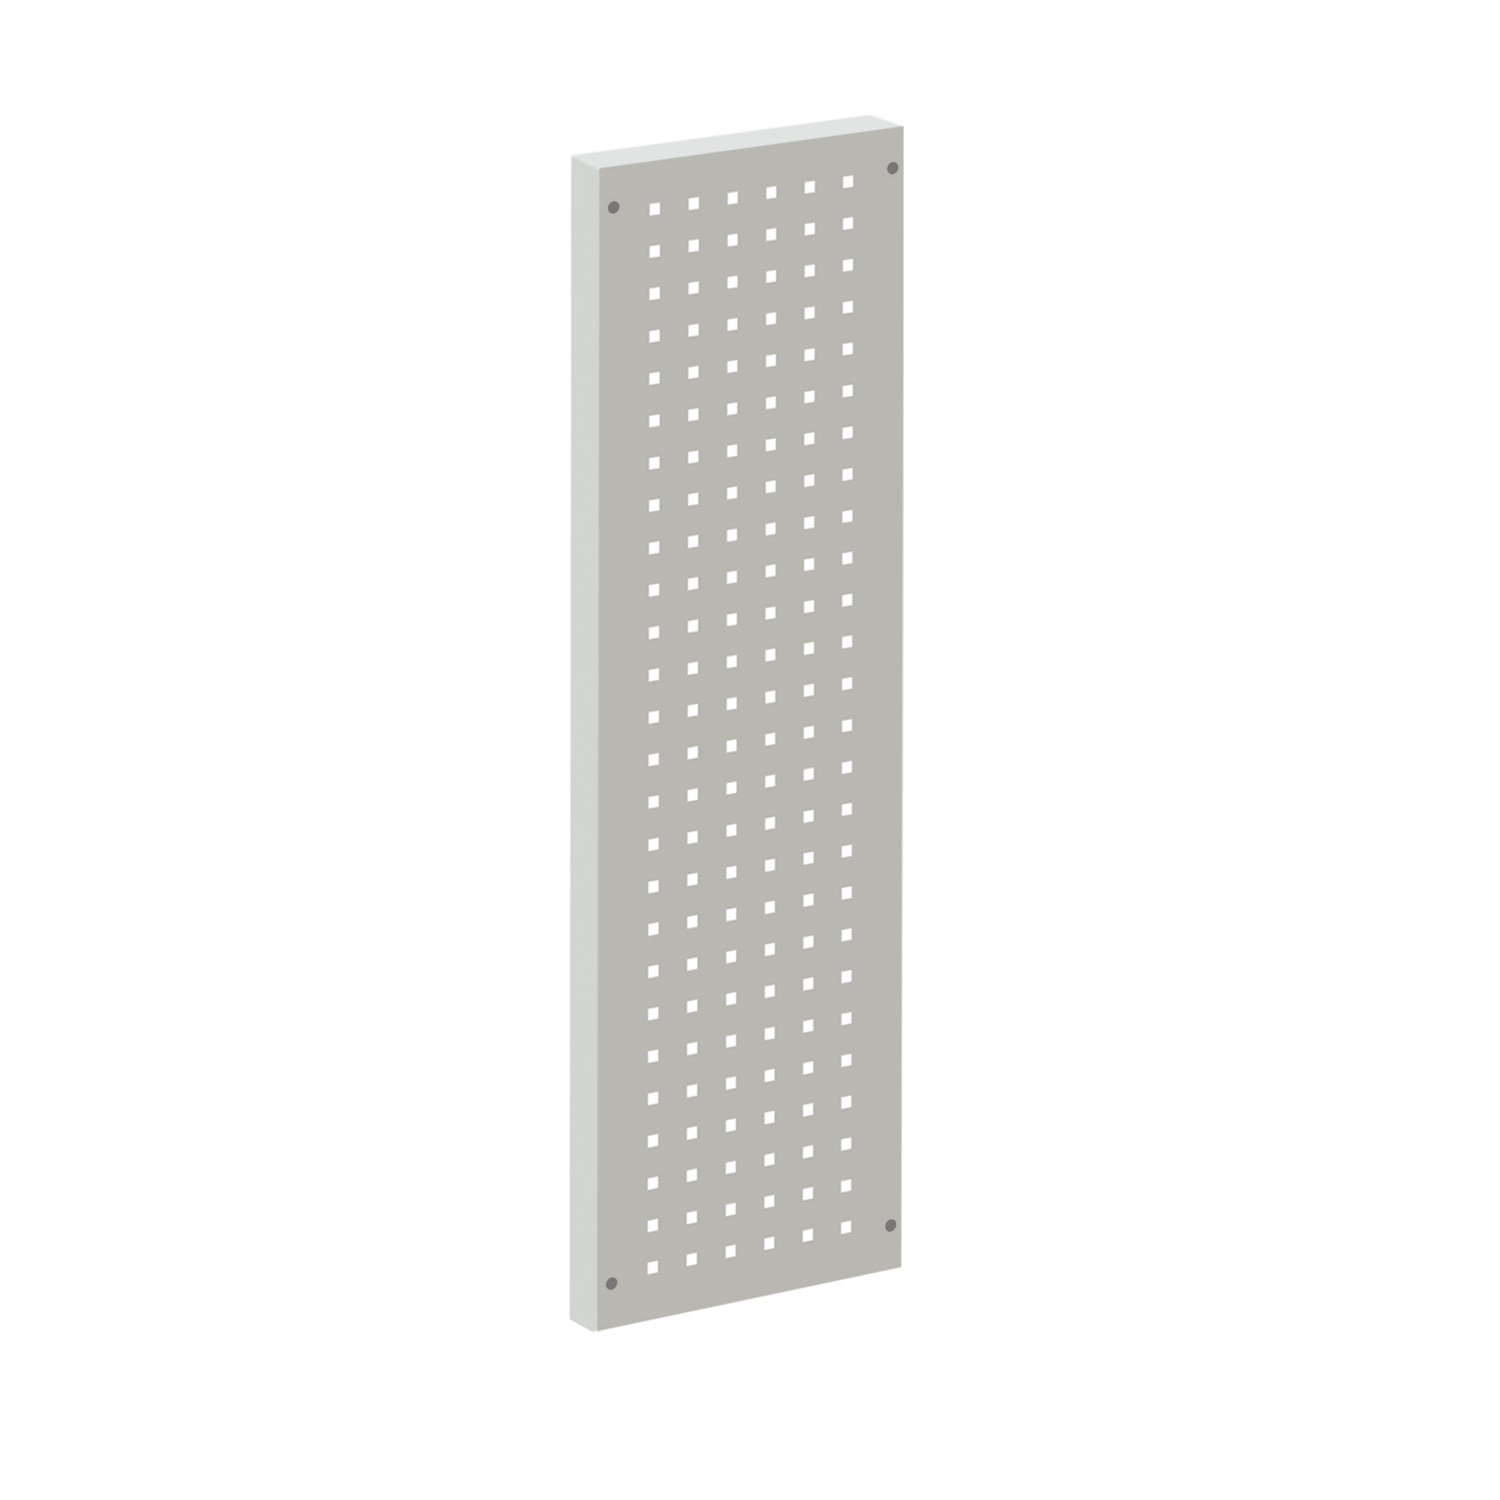 Upper Squarepeg Partition Walling Panel (300mm)